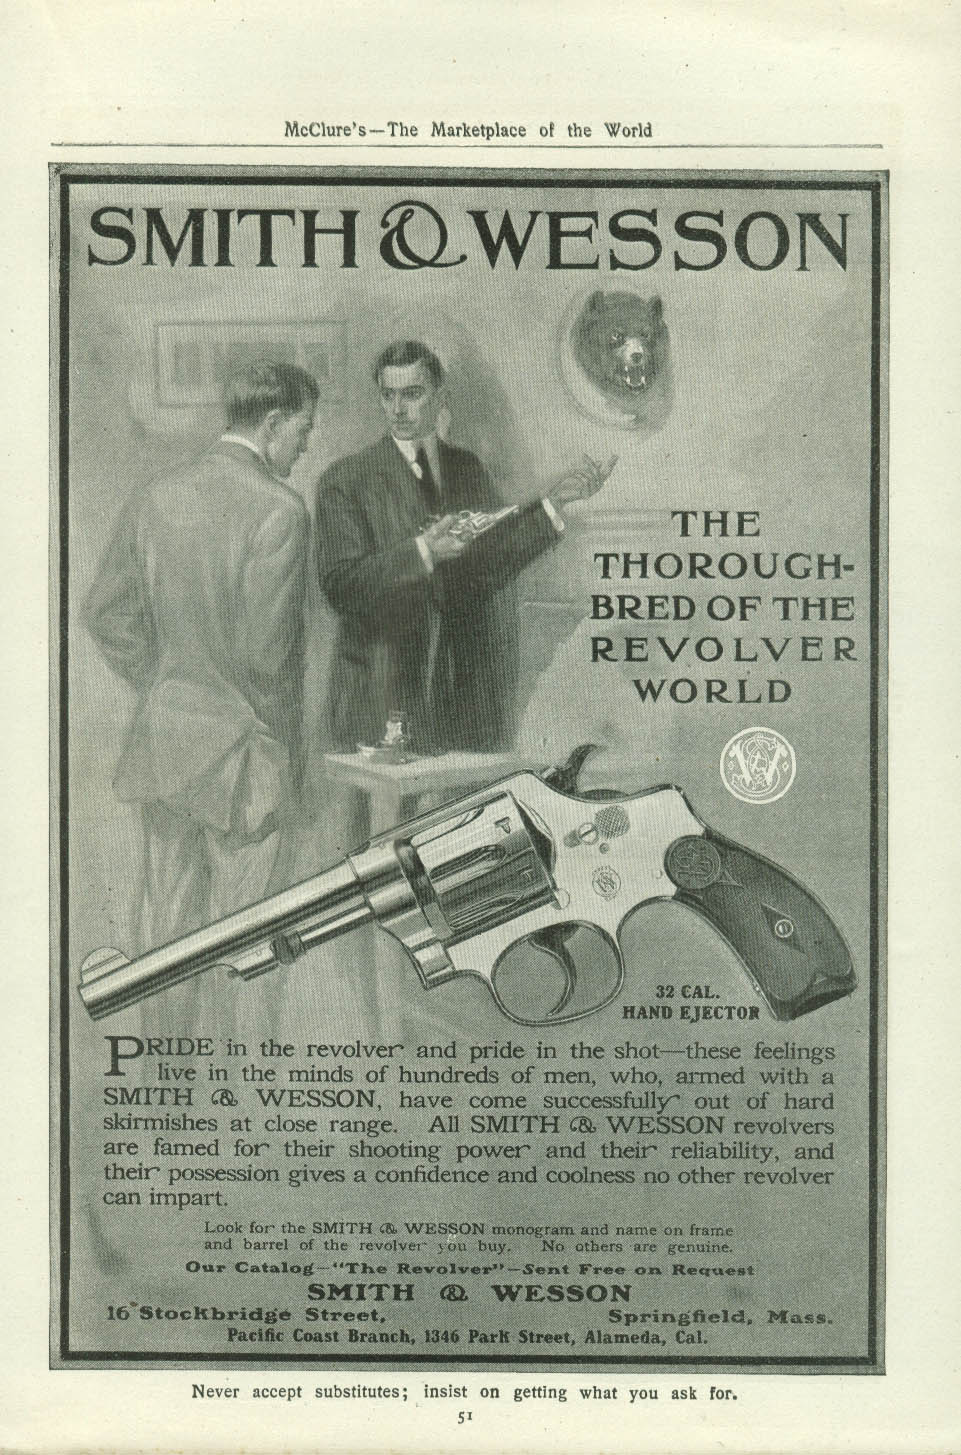 32 Cal hand Ejector Smith & Wesson Thoroughbred of the Revolver World ad 1907